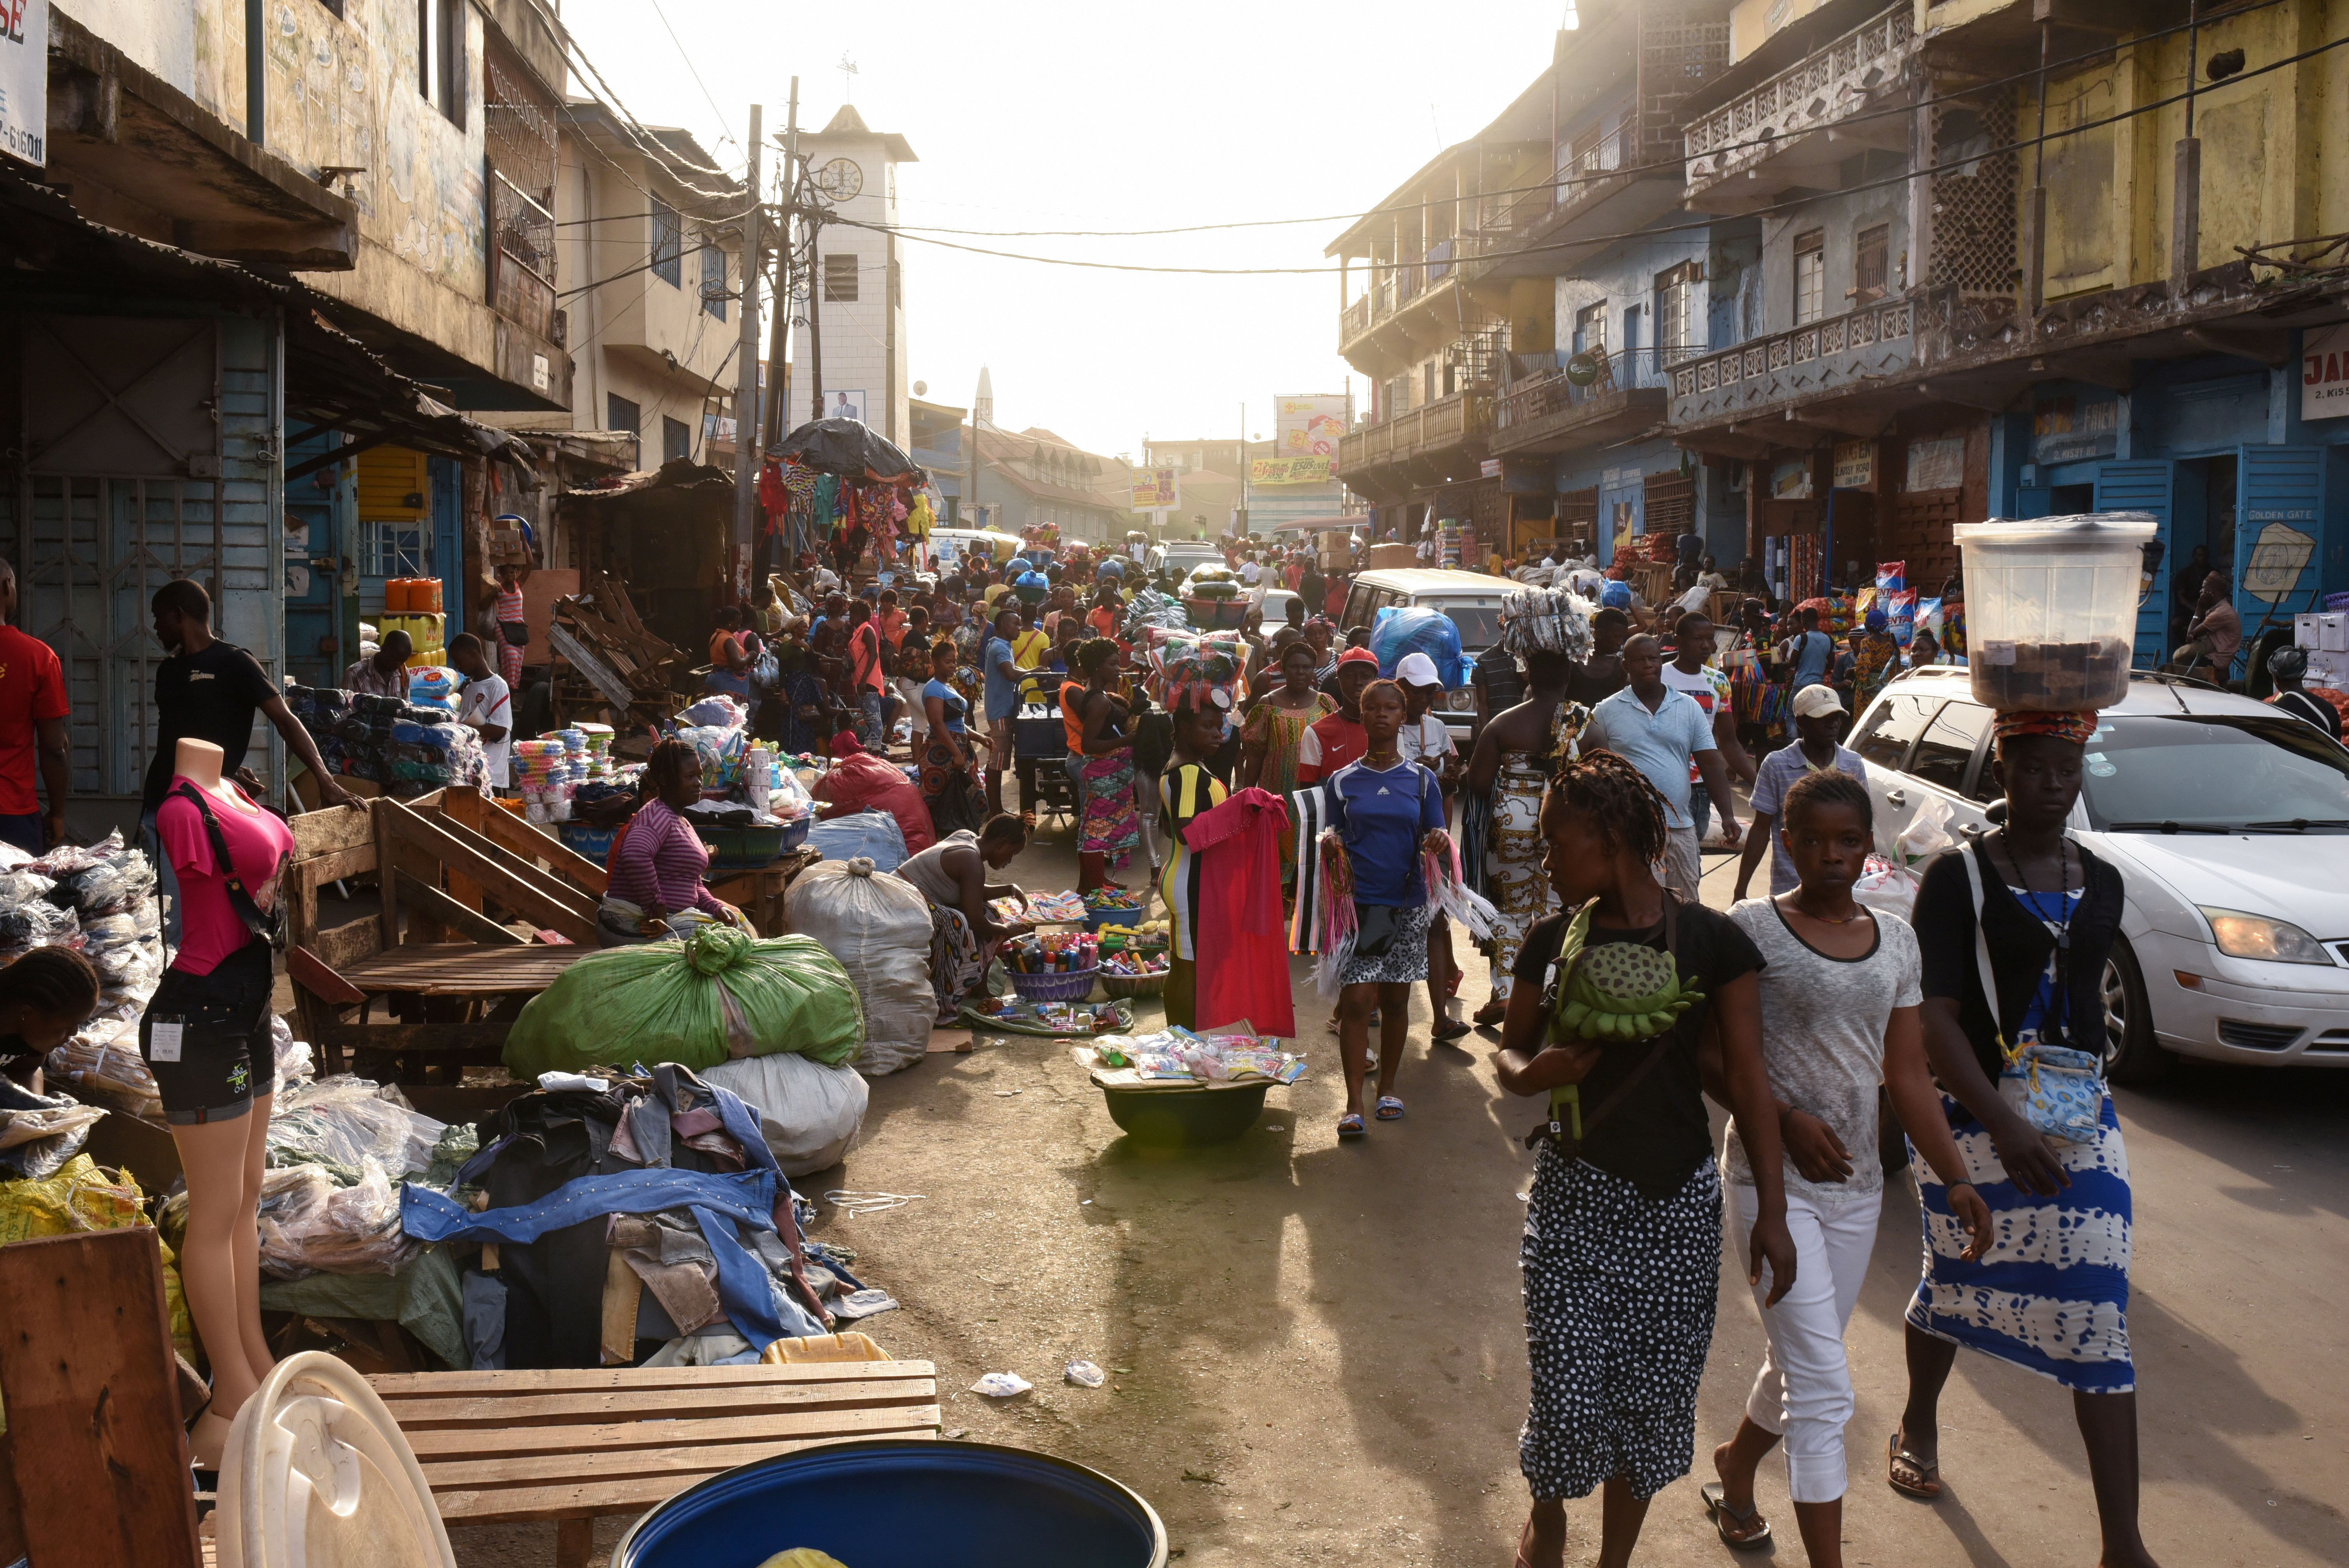 Crowds of people walk through the Abacha Street market amid the coronavirus disease (COVID-19) outbreak in Freetown, Sierra Leone March 19, 2020. REUTERS/Cooper Inveen - RC2XMF9XFHVL